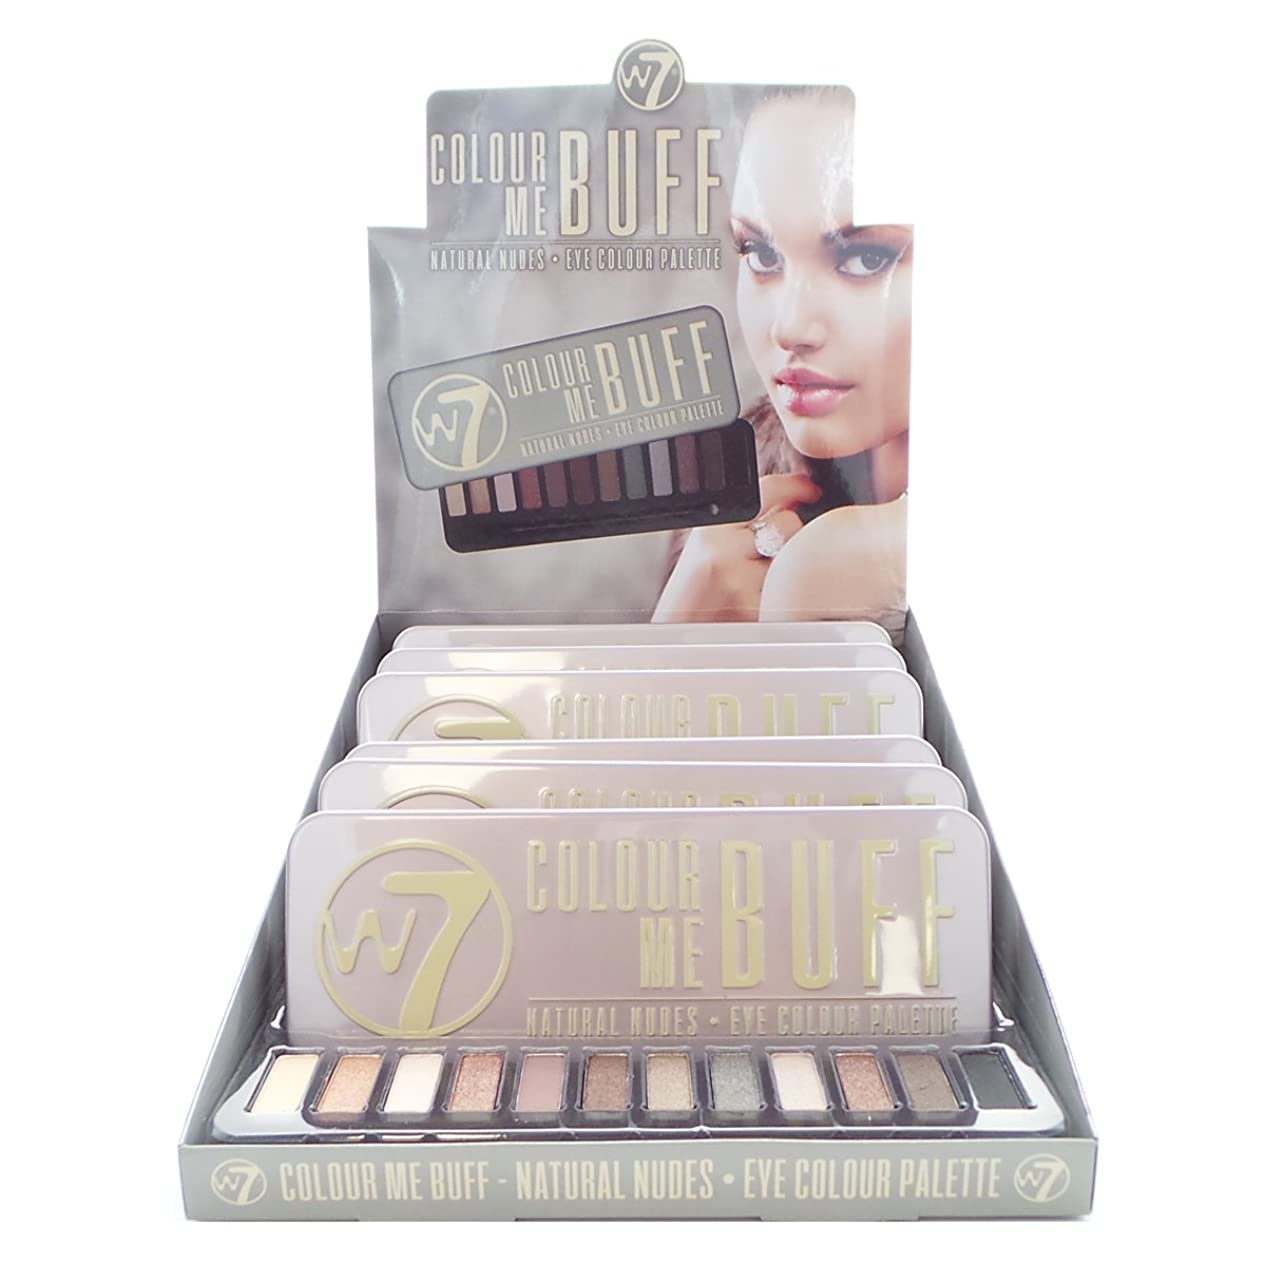 圧倒的レンダリング時期尚早W7 Colour Me Buff Natural Nudes Eye Colour Palette Display Set, 6 Pieces Plus Display Tester (並行輸入品)